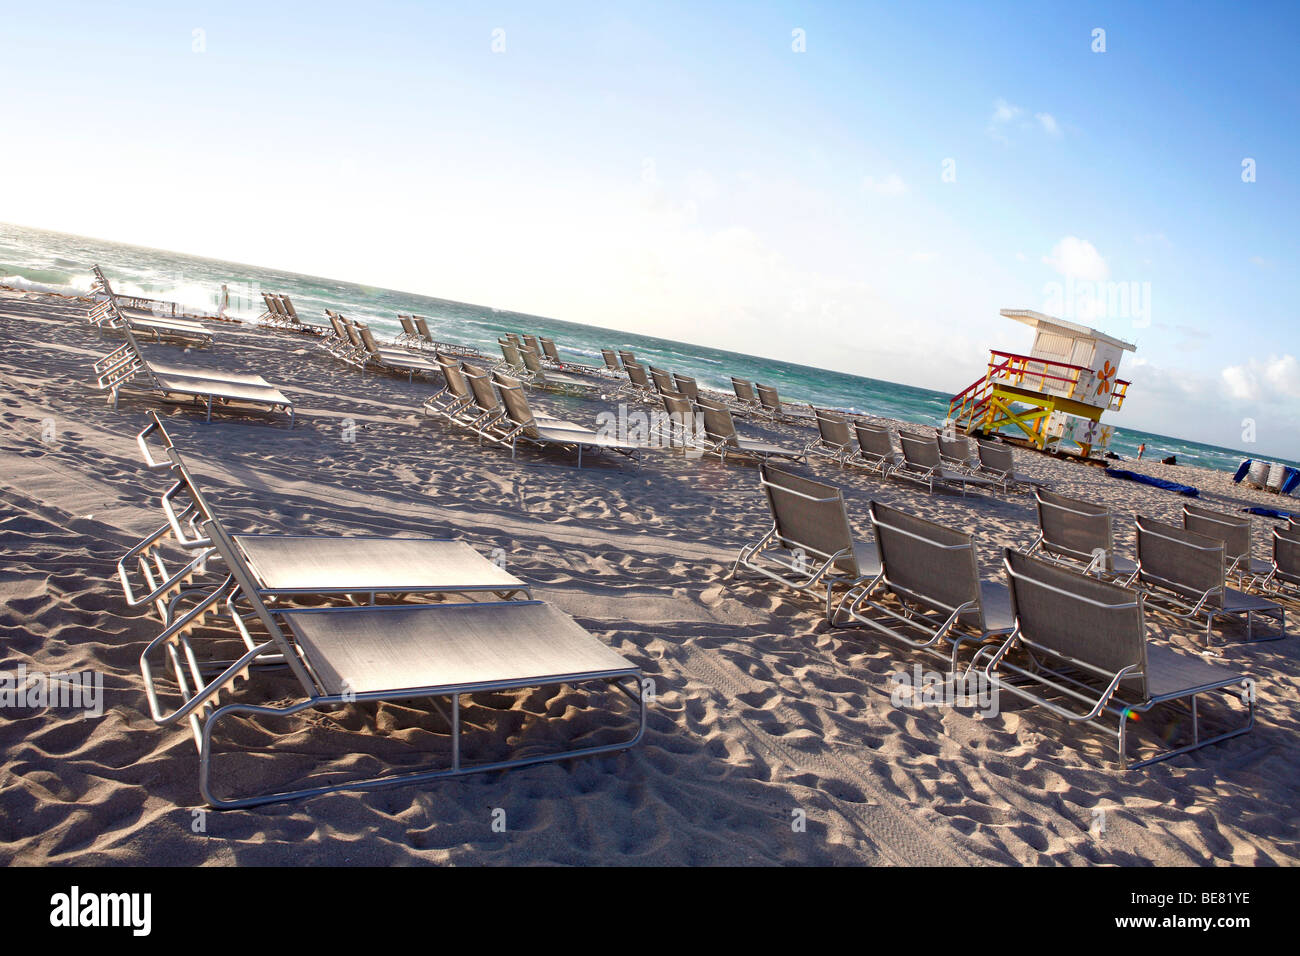 Deck chairs on the deserted South Beach, Miami Beach, Florida, USA - Stock Image